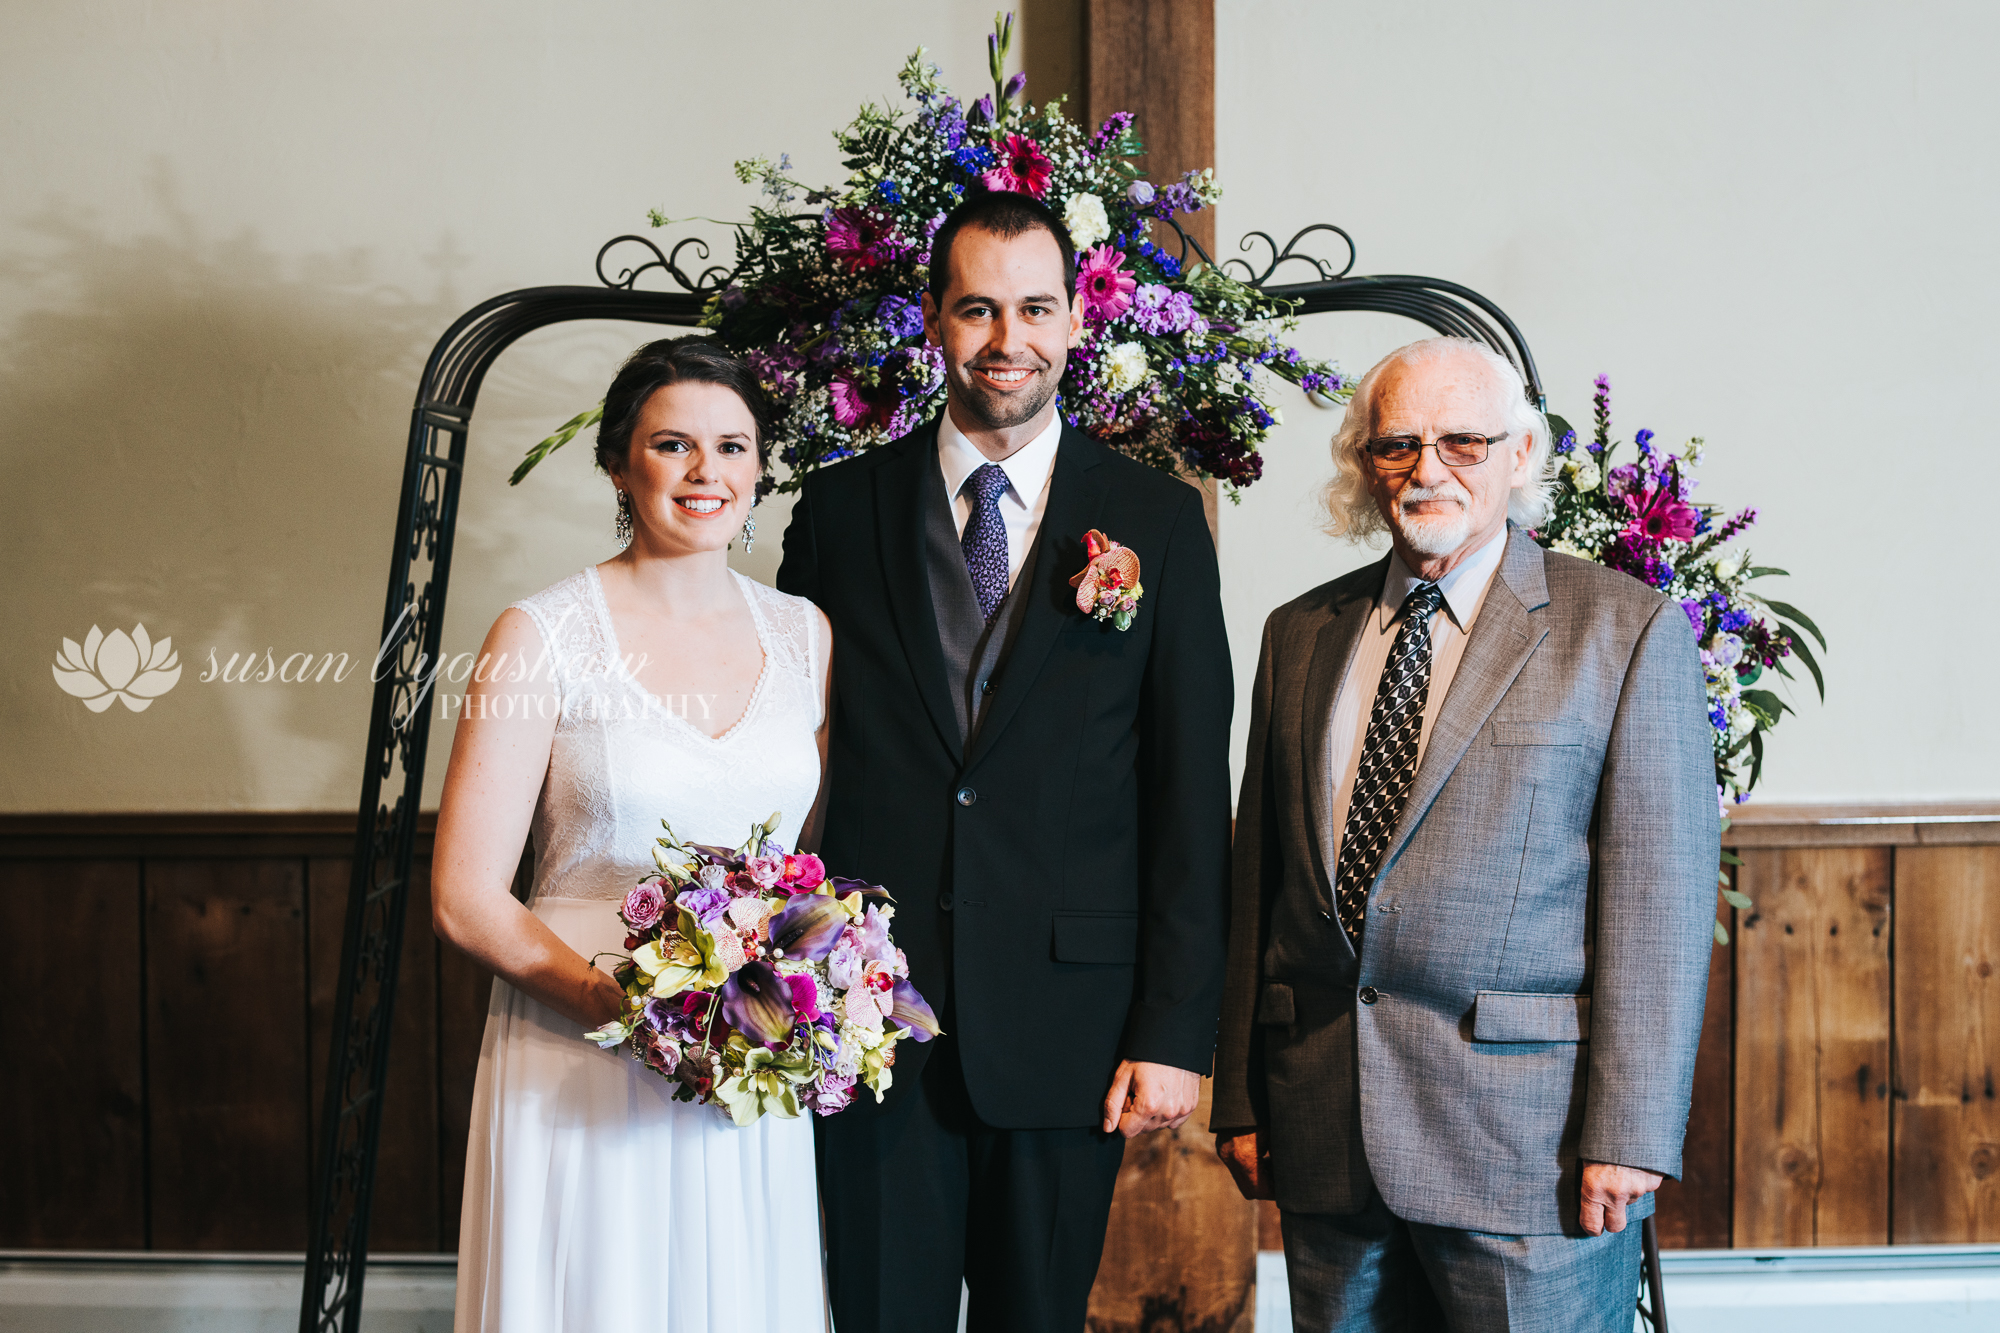 Adena and  Erik Wedding 05-17-2019 SLY Photography-63.jpg